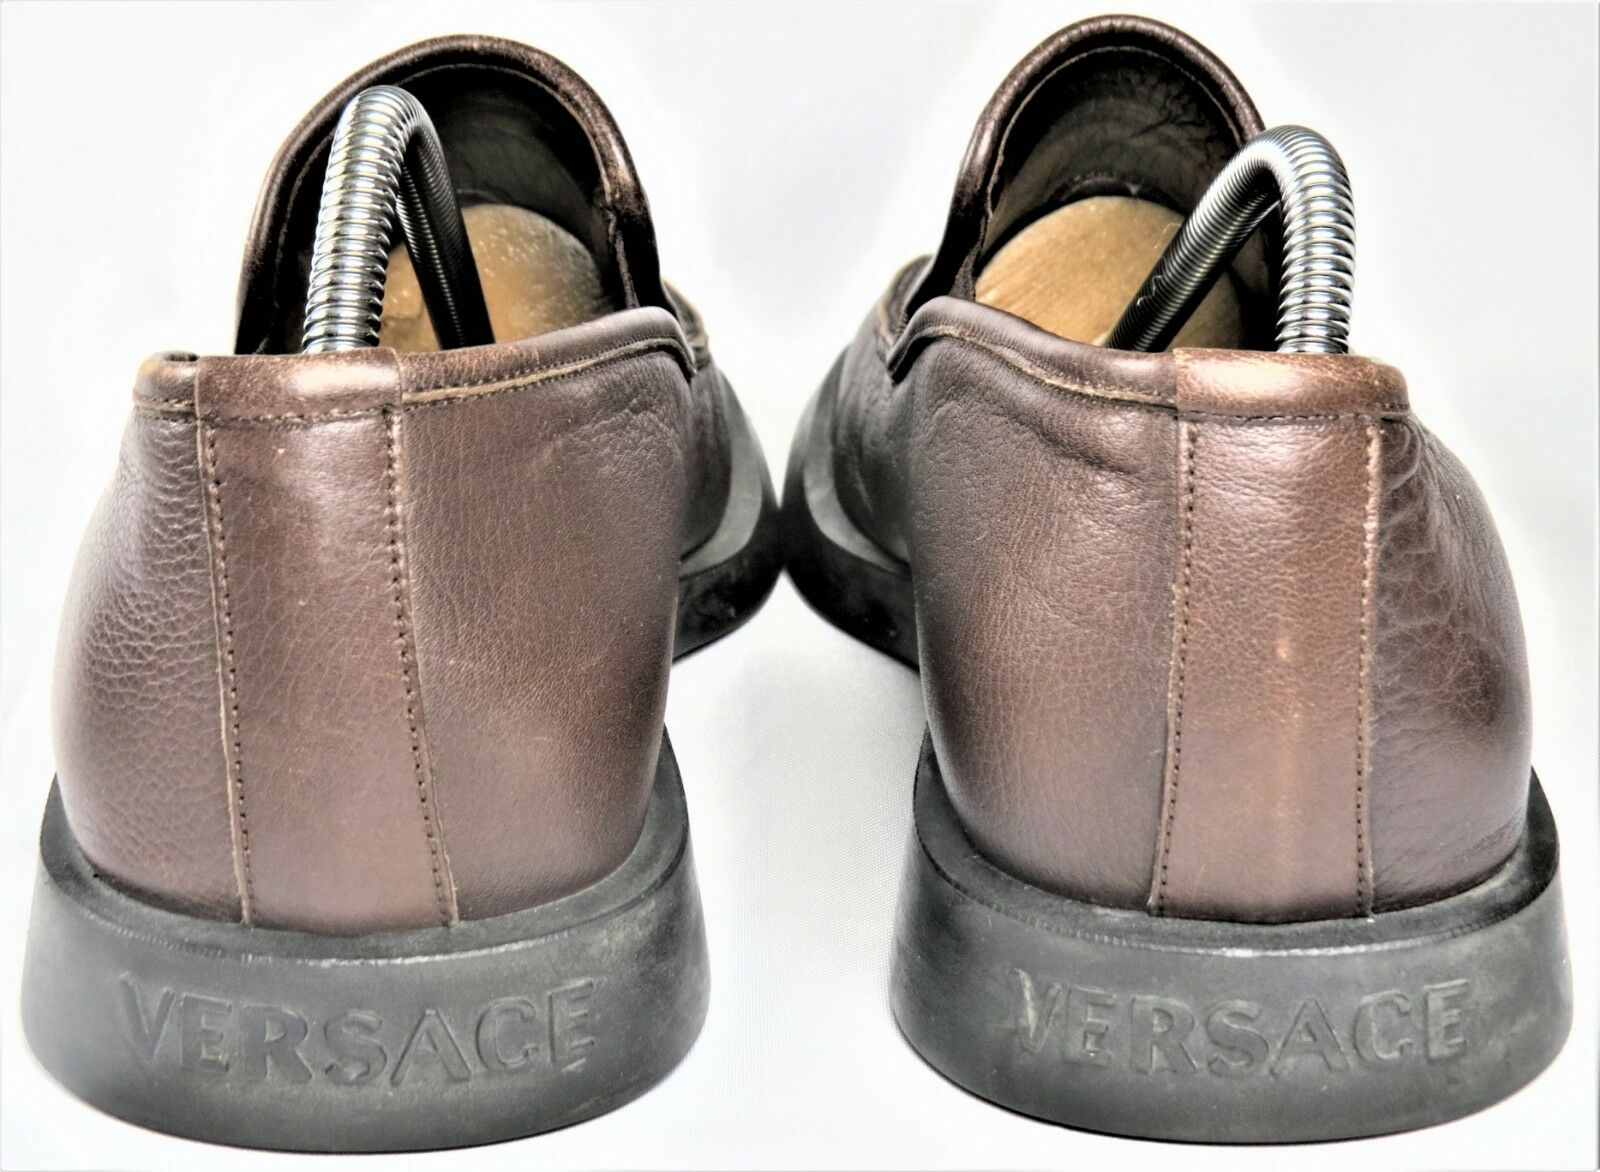 Gianni Versace Mens Dress shoes Brown 10.5 Leather Loafer Slip-on Medusa